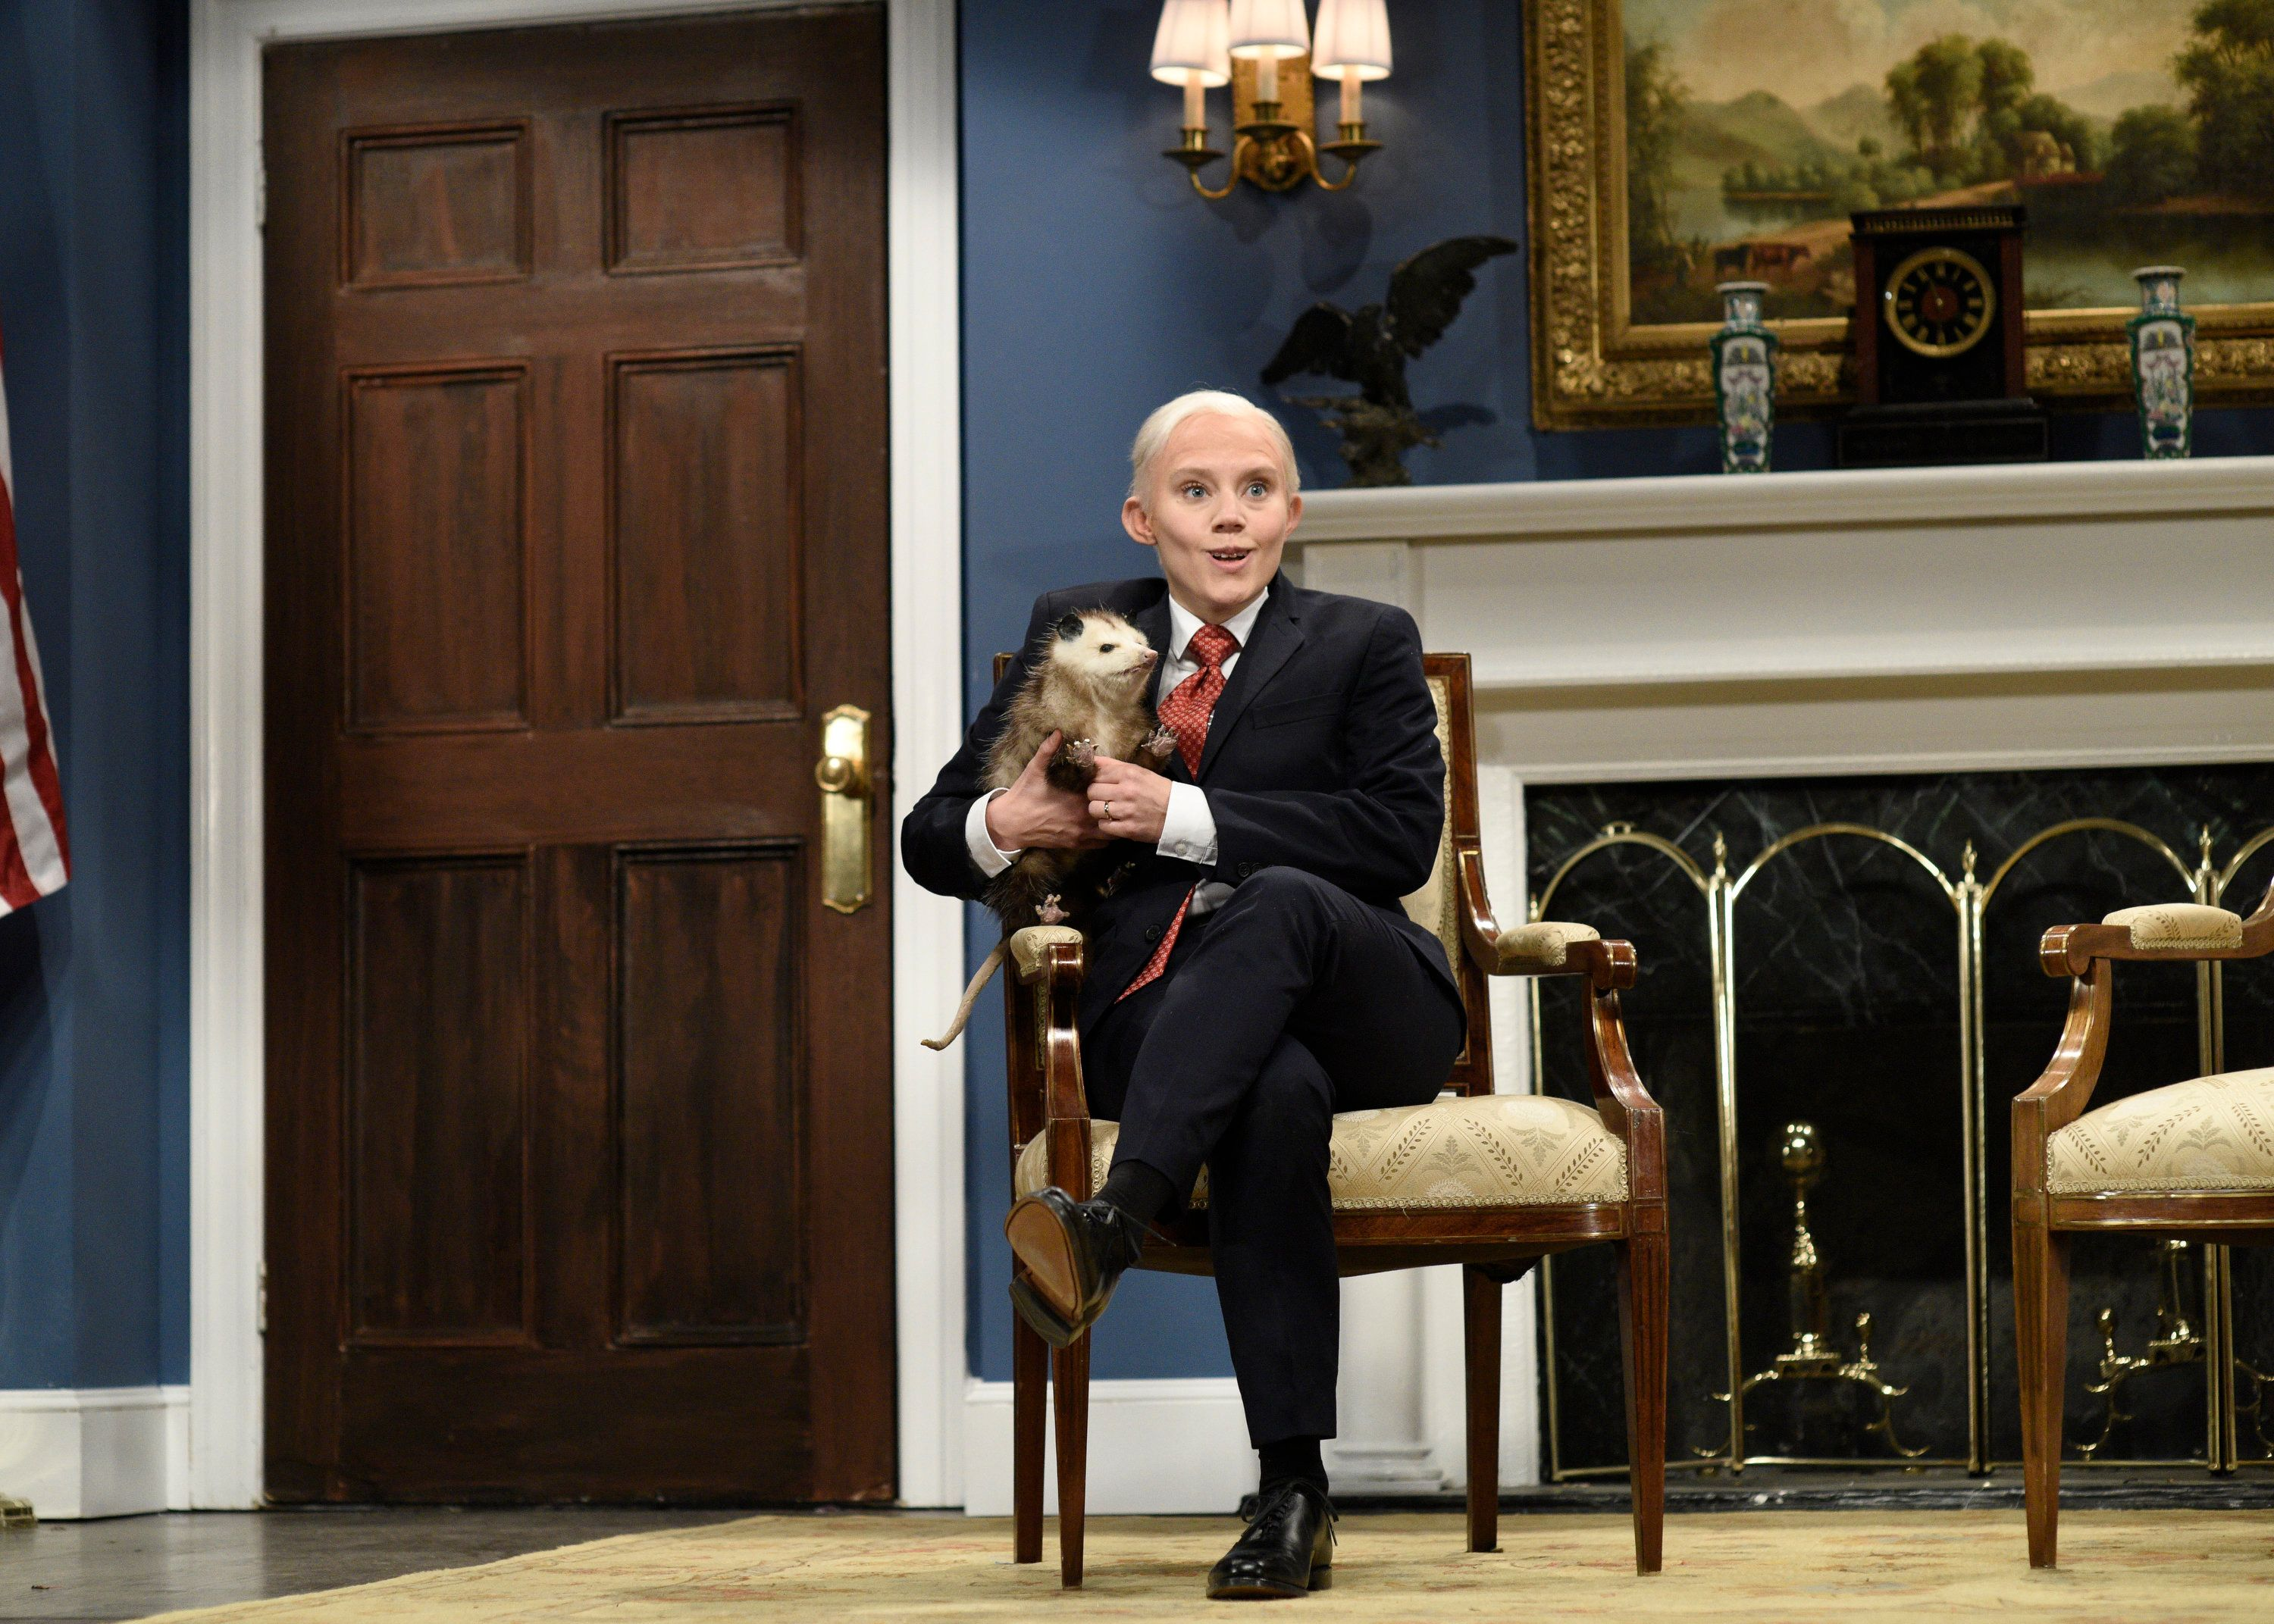 SATURDAY NIGHT LIVE -- Episode 1730 -- Pictured: Kate McKinnon as Attorney General Jeff Sessions during the Cold Open in Studio 8H on Saturday, November 11, 2017 -- (Photo by: Will Heath/NBC/NBCU Photo Bank via Getty Images)